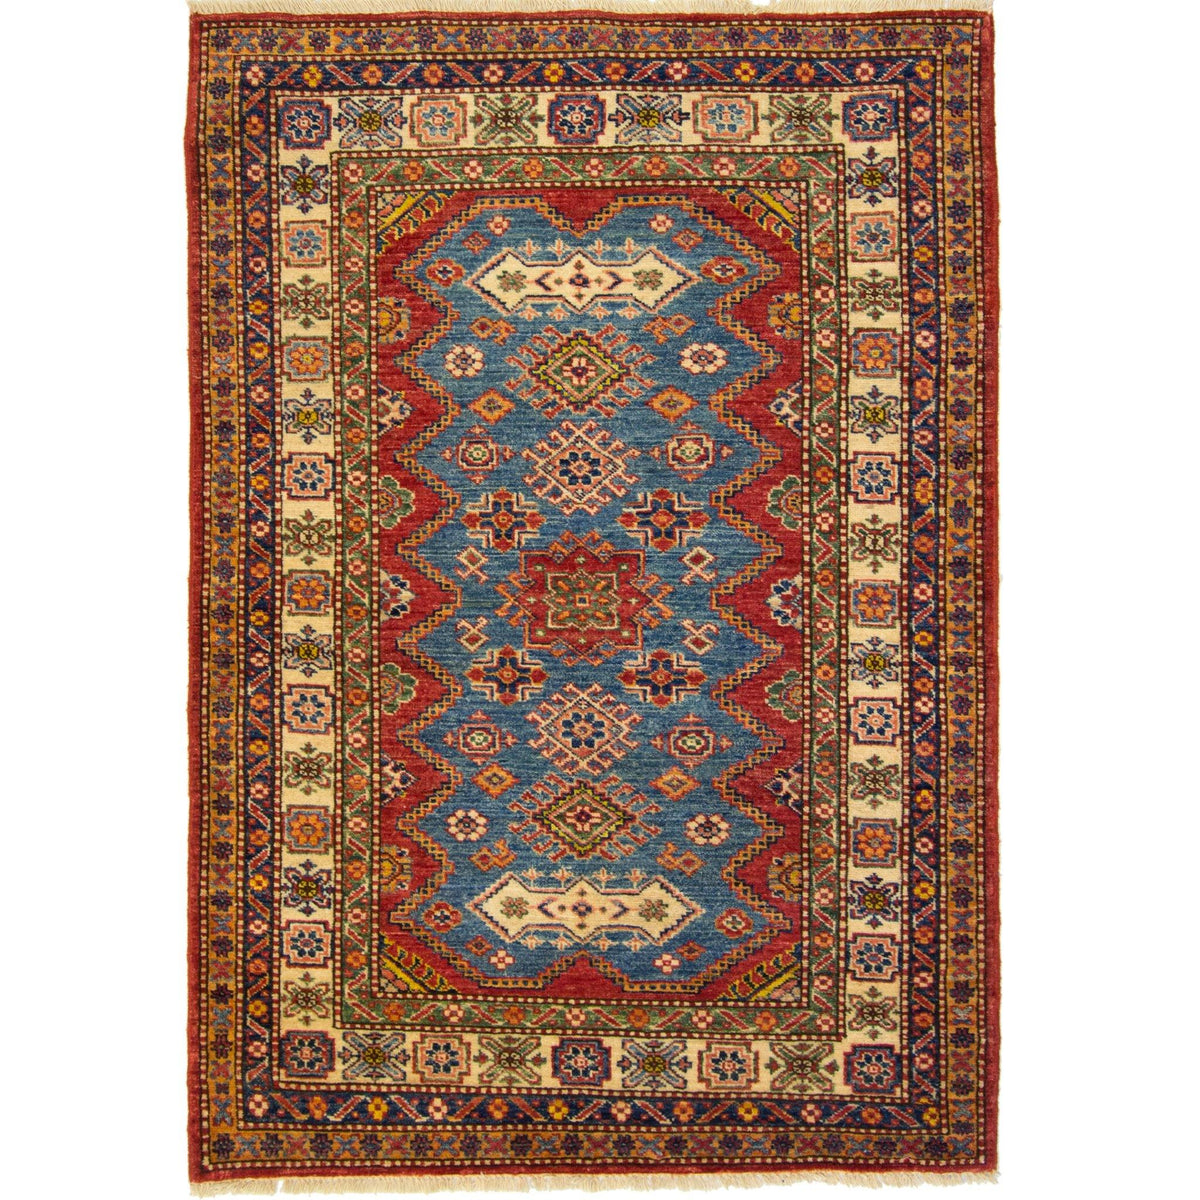 Super Kazak Rug 103cm x 149cm Persian-Rug | House-of-Haghi | NewMarket | Auckland | NZ | Handmade Persian Rugs | Hand Knotted Persian Rugs